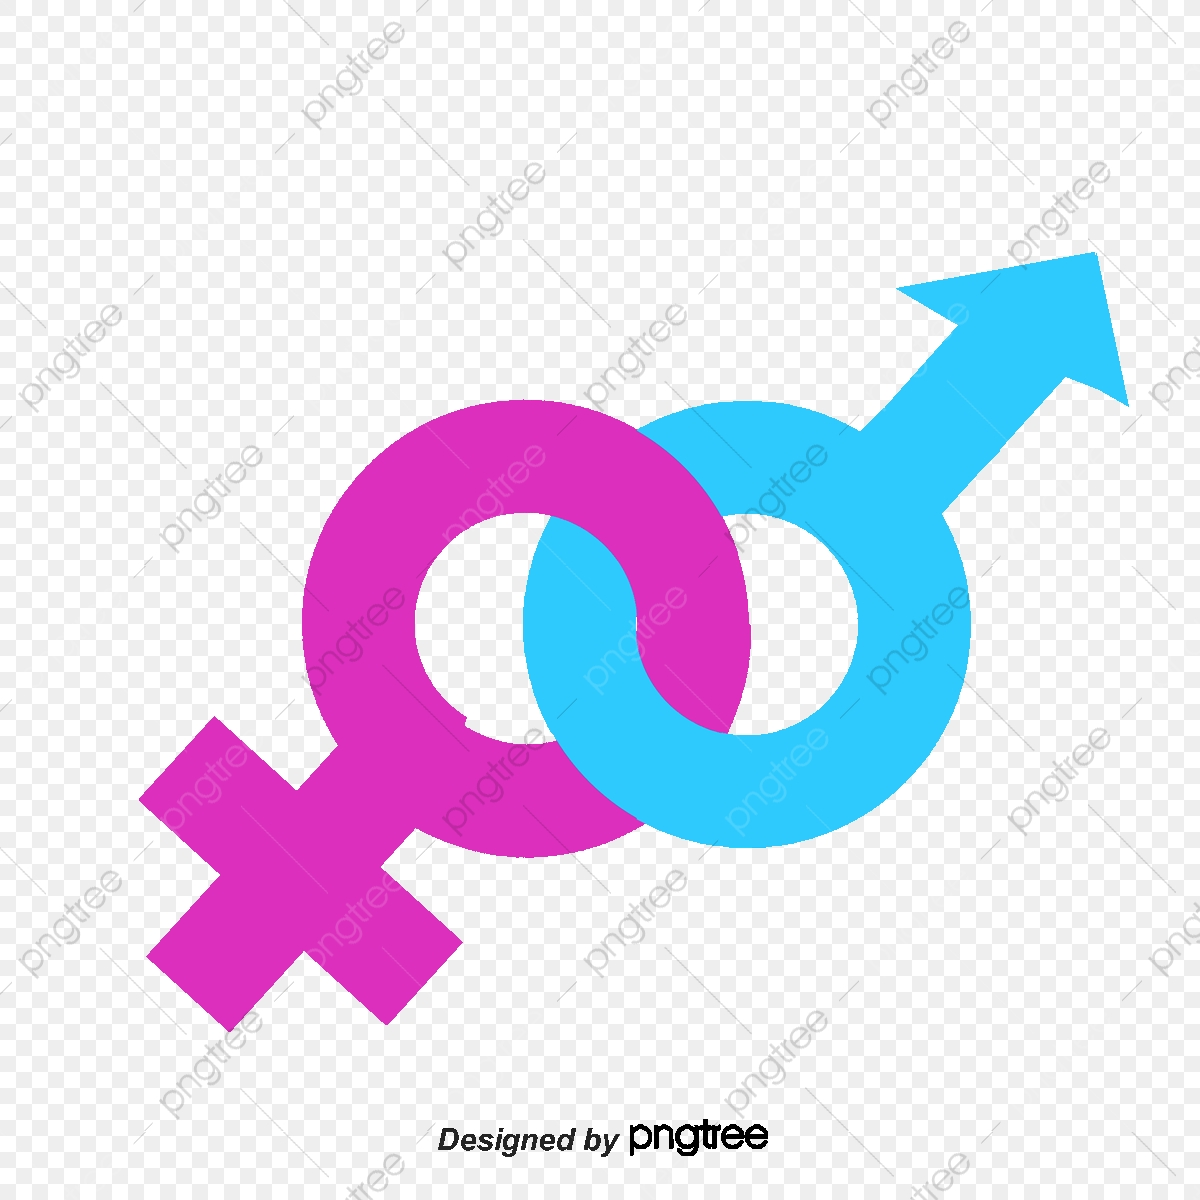 Male And Female Symbols, Men And Women, Symbol, Overlapping.